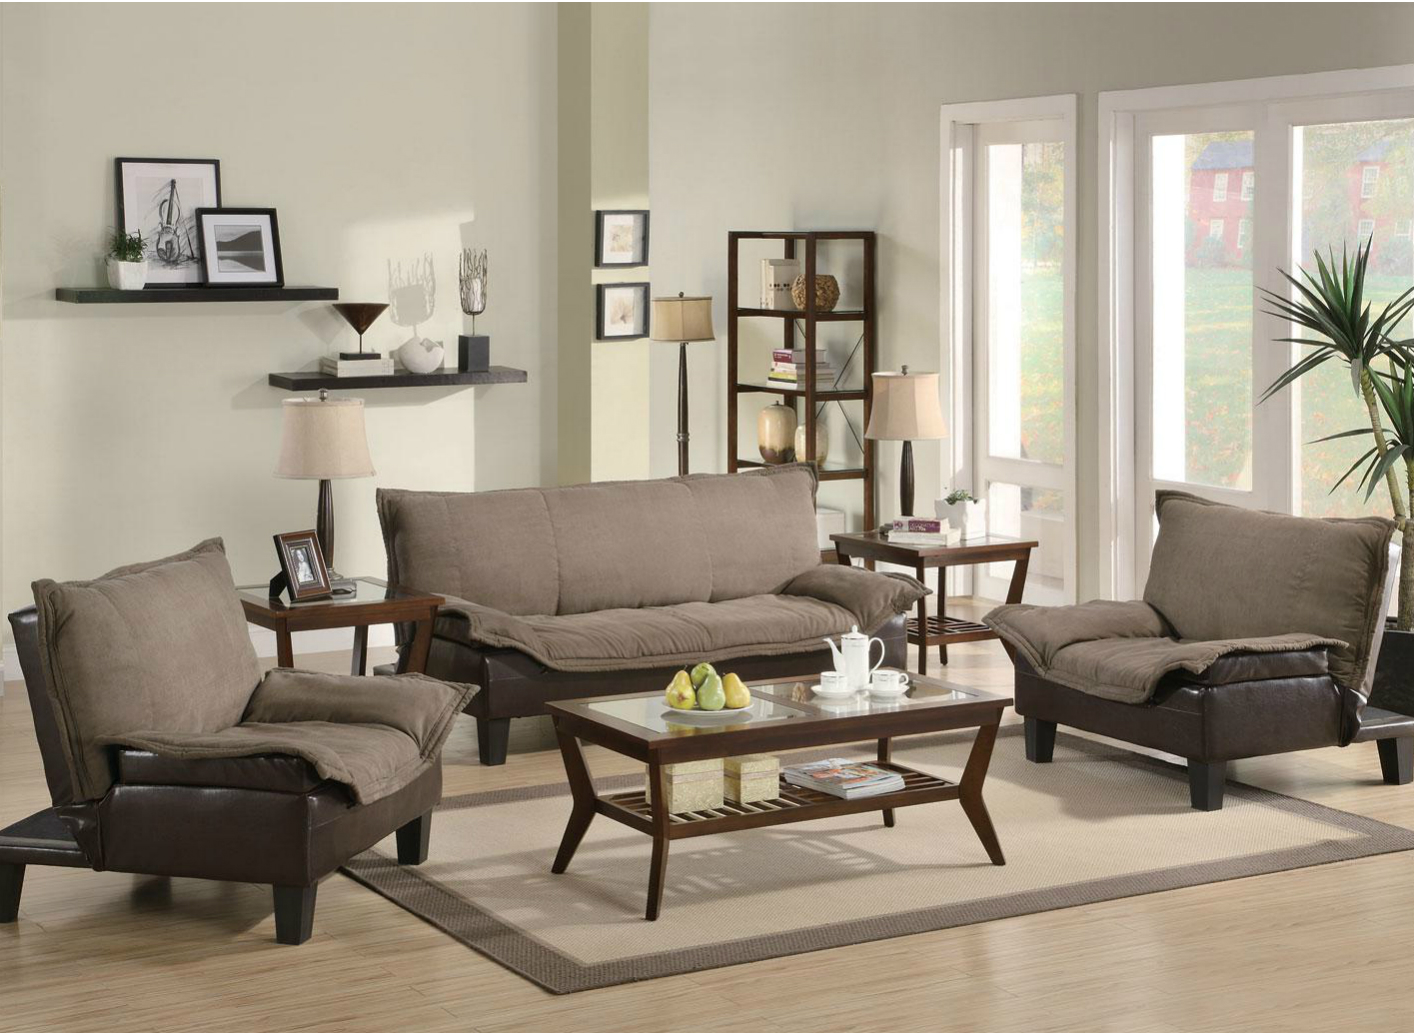 Jean brown microfiber sofa and loveseat set steal a sofa furniture outlet los angeles ca Brown microfiber couch and loveseat